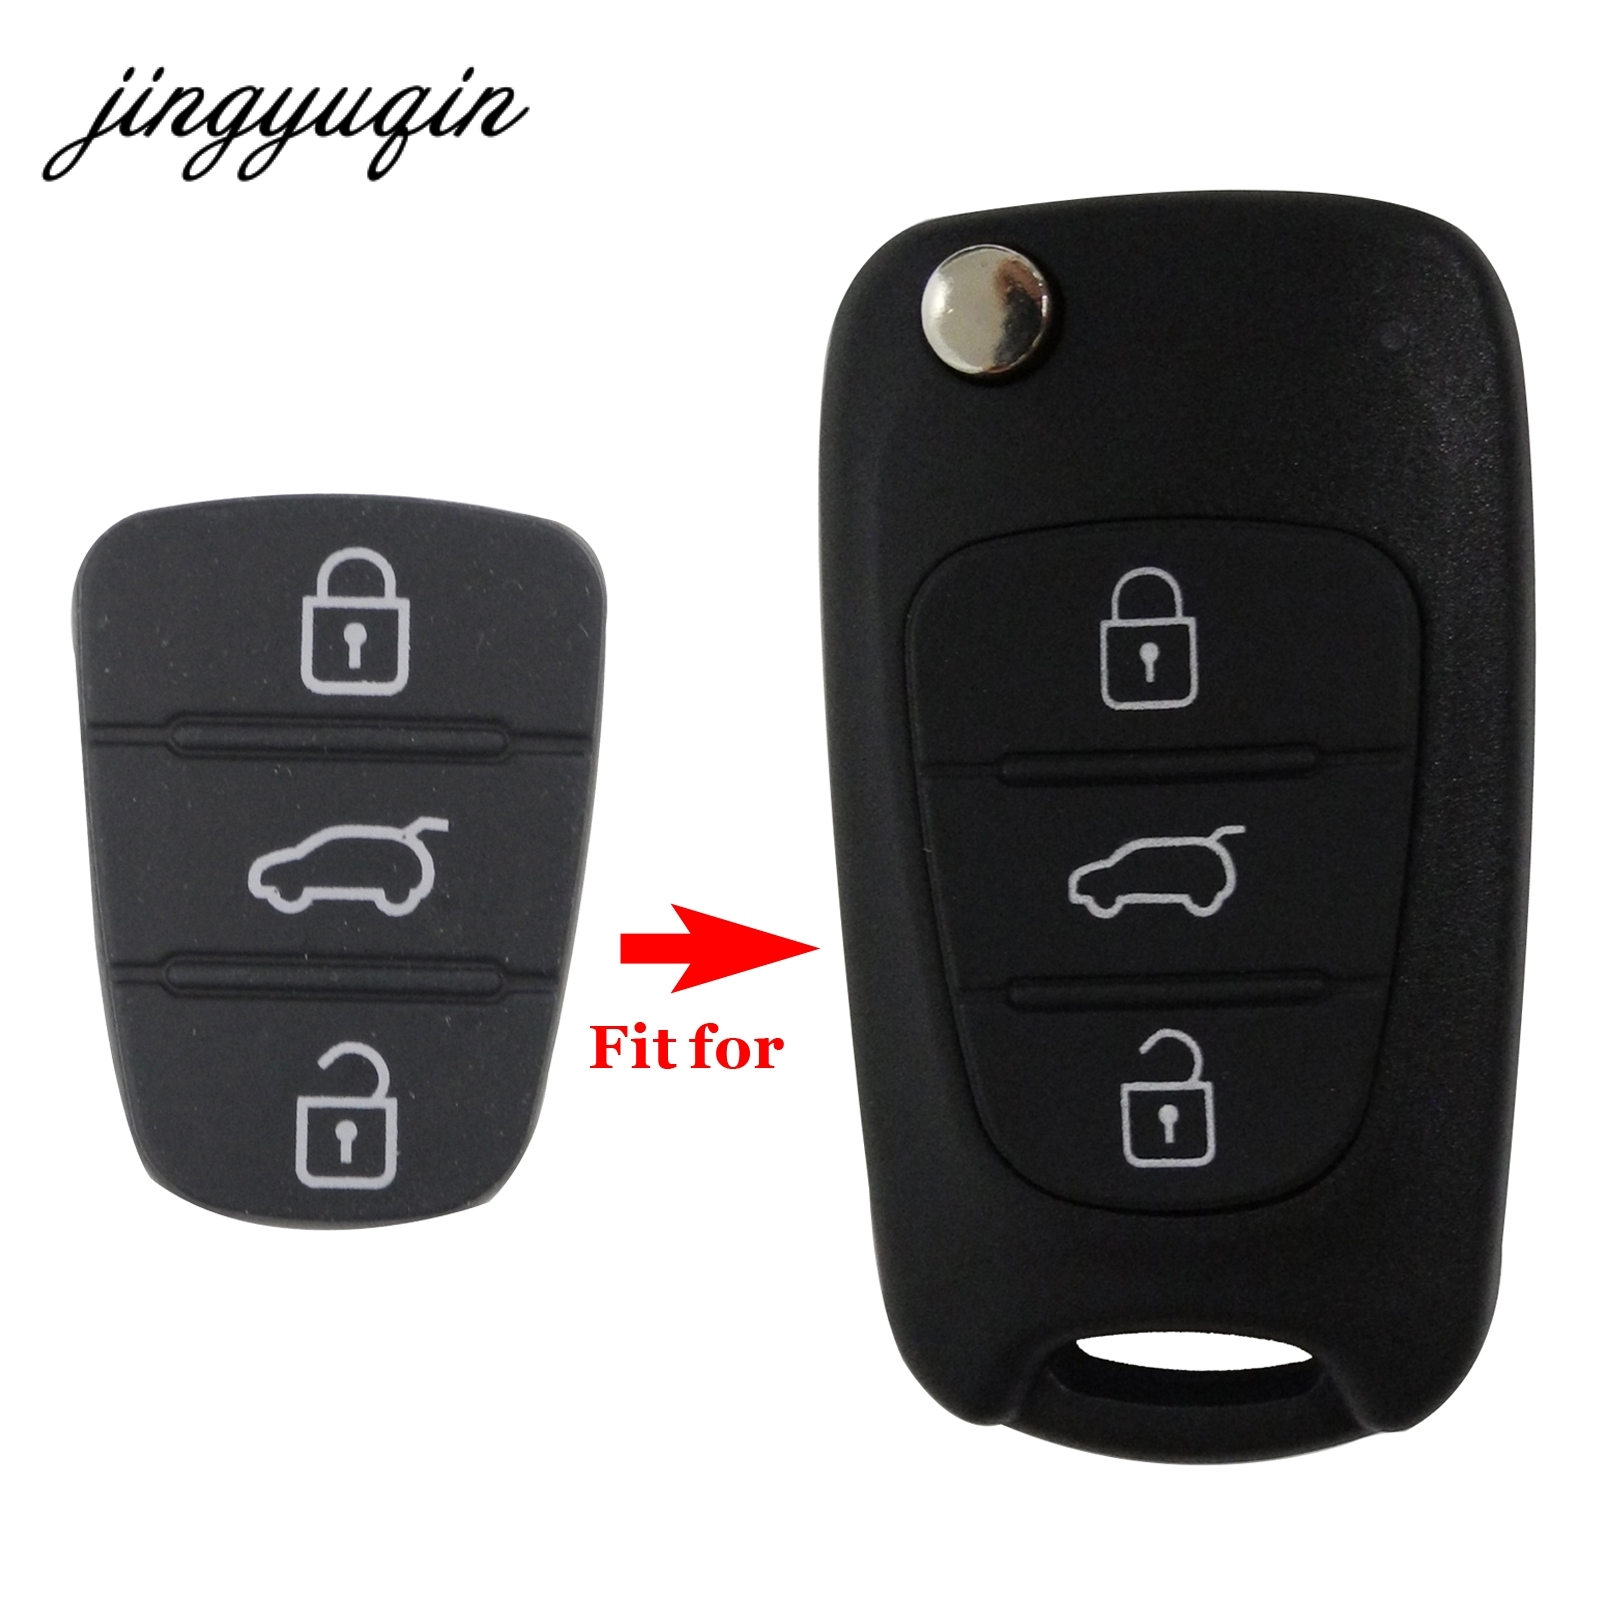 jingyuqin 3 Button Remote Key Fob Case Rubber Pad For Hyundai I10 I20 I30 IX35 for Kia K2 K5 Rio Sportage Flip Key maizhi 3 button flip folding car key shell for hyundai avante i30 ix35 kia k2 k5 sorento sportage key cover case styling